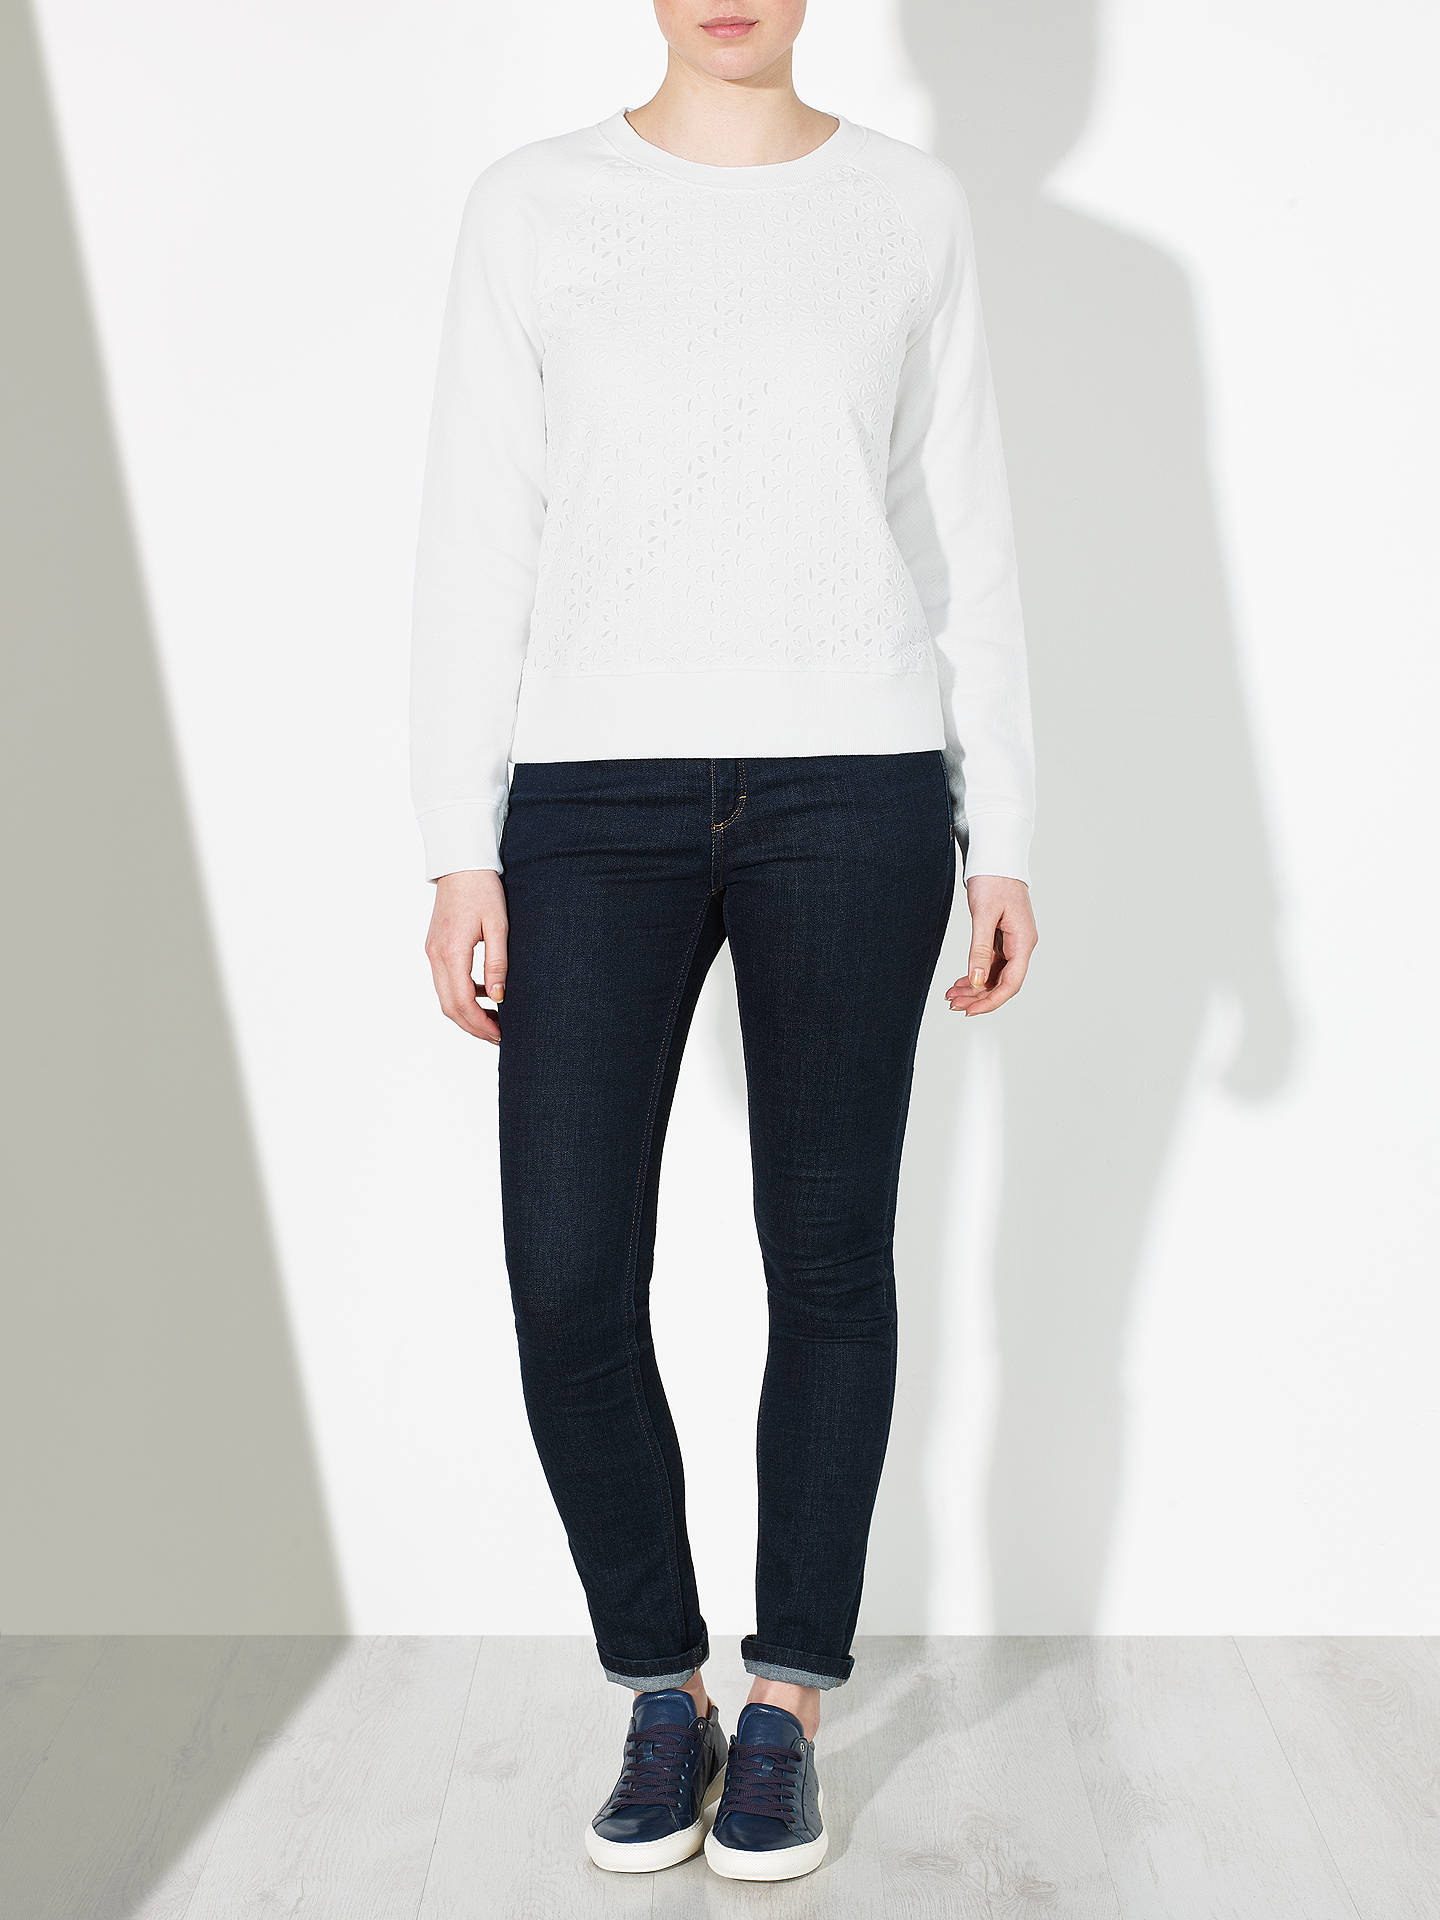 BuyCollection WEEKEND by John Lewis Broderie Front Sweatshirt, White, 8 Online at johnlewis.com